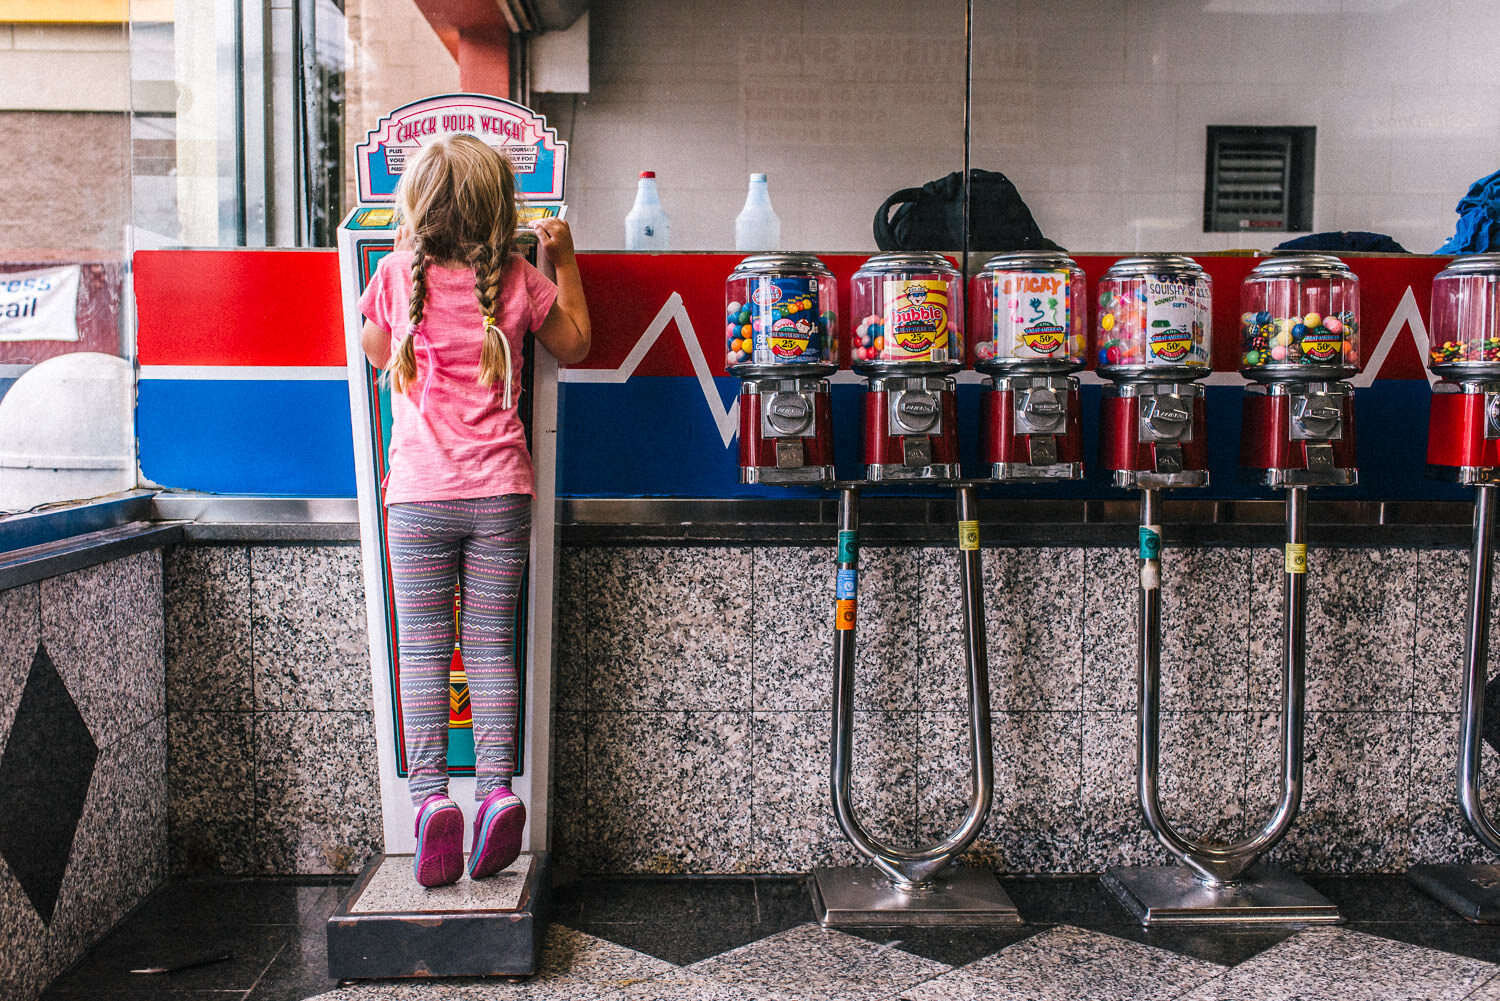 A little girl stands next to some gumball machines at the car wash.